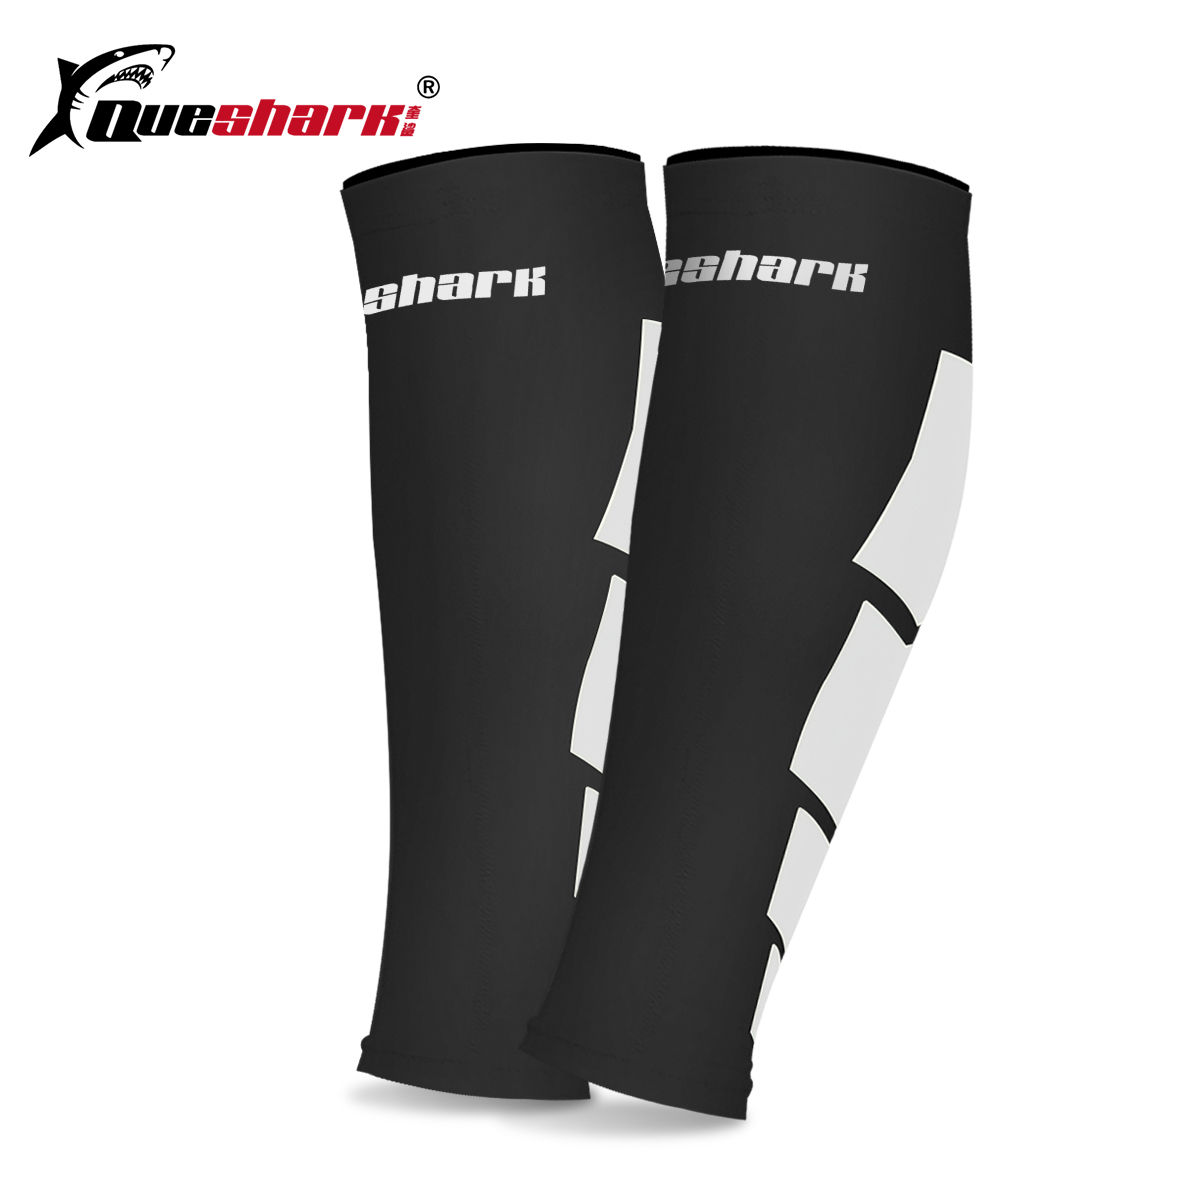 Straightforward Male Mens Full Leg Sleeve Footless Knee Brace Stretchy Socks Elastic Silky Silk Stockings Men Socks Anti Fatigue Man Socks Sets Underwear & Sleepwears